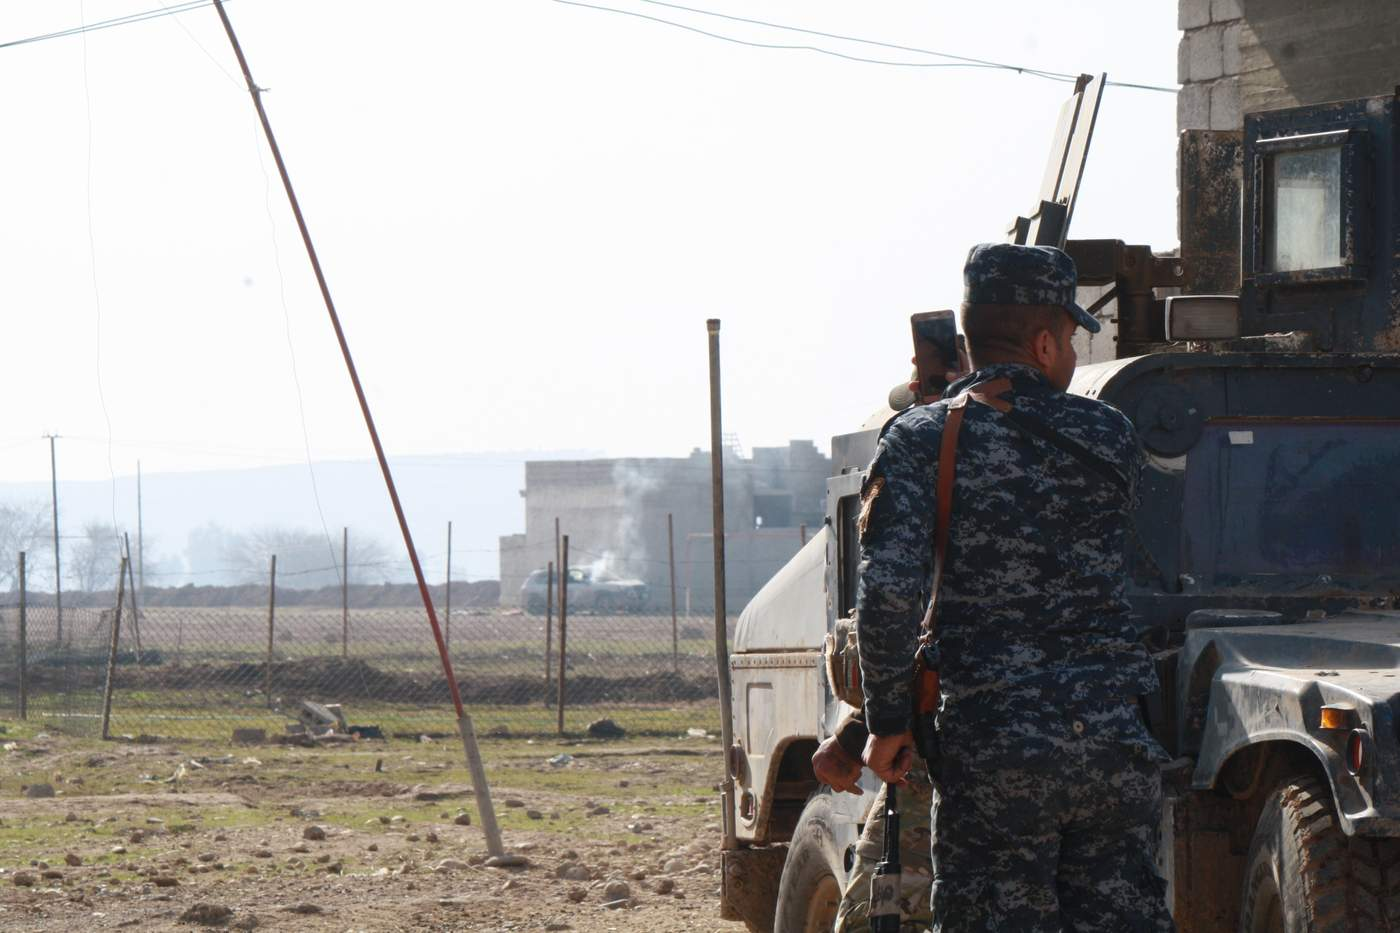 Iraqi soldiers blow up an IS car laced with bombs the day after capturing this area of Mosul, Iraq on Jan. 13, 2017. (H.Murdock\/VOA)